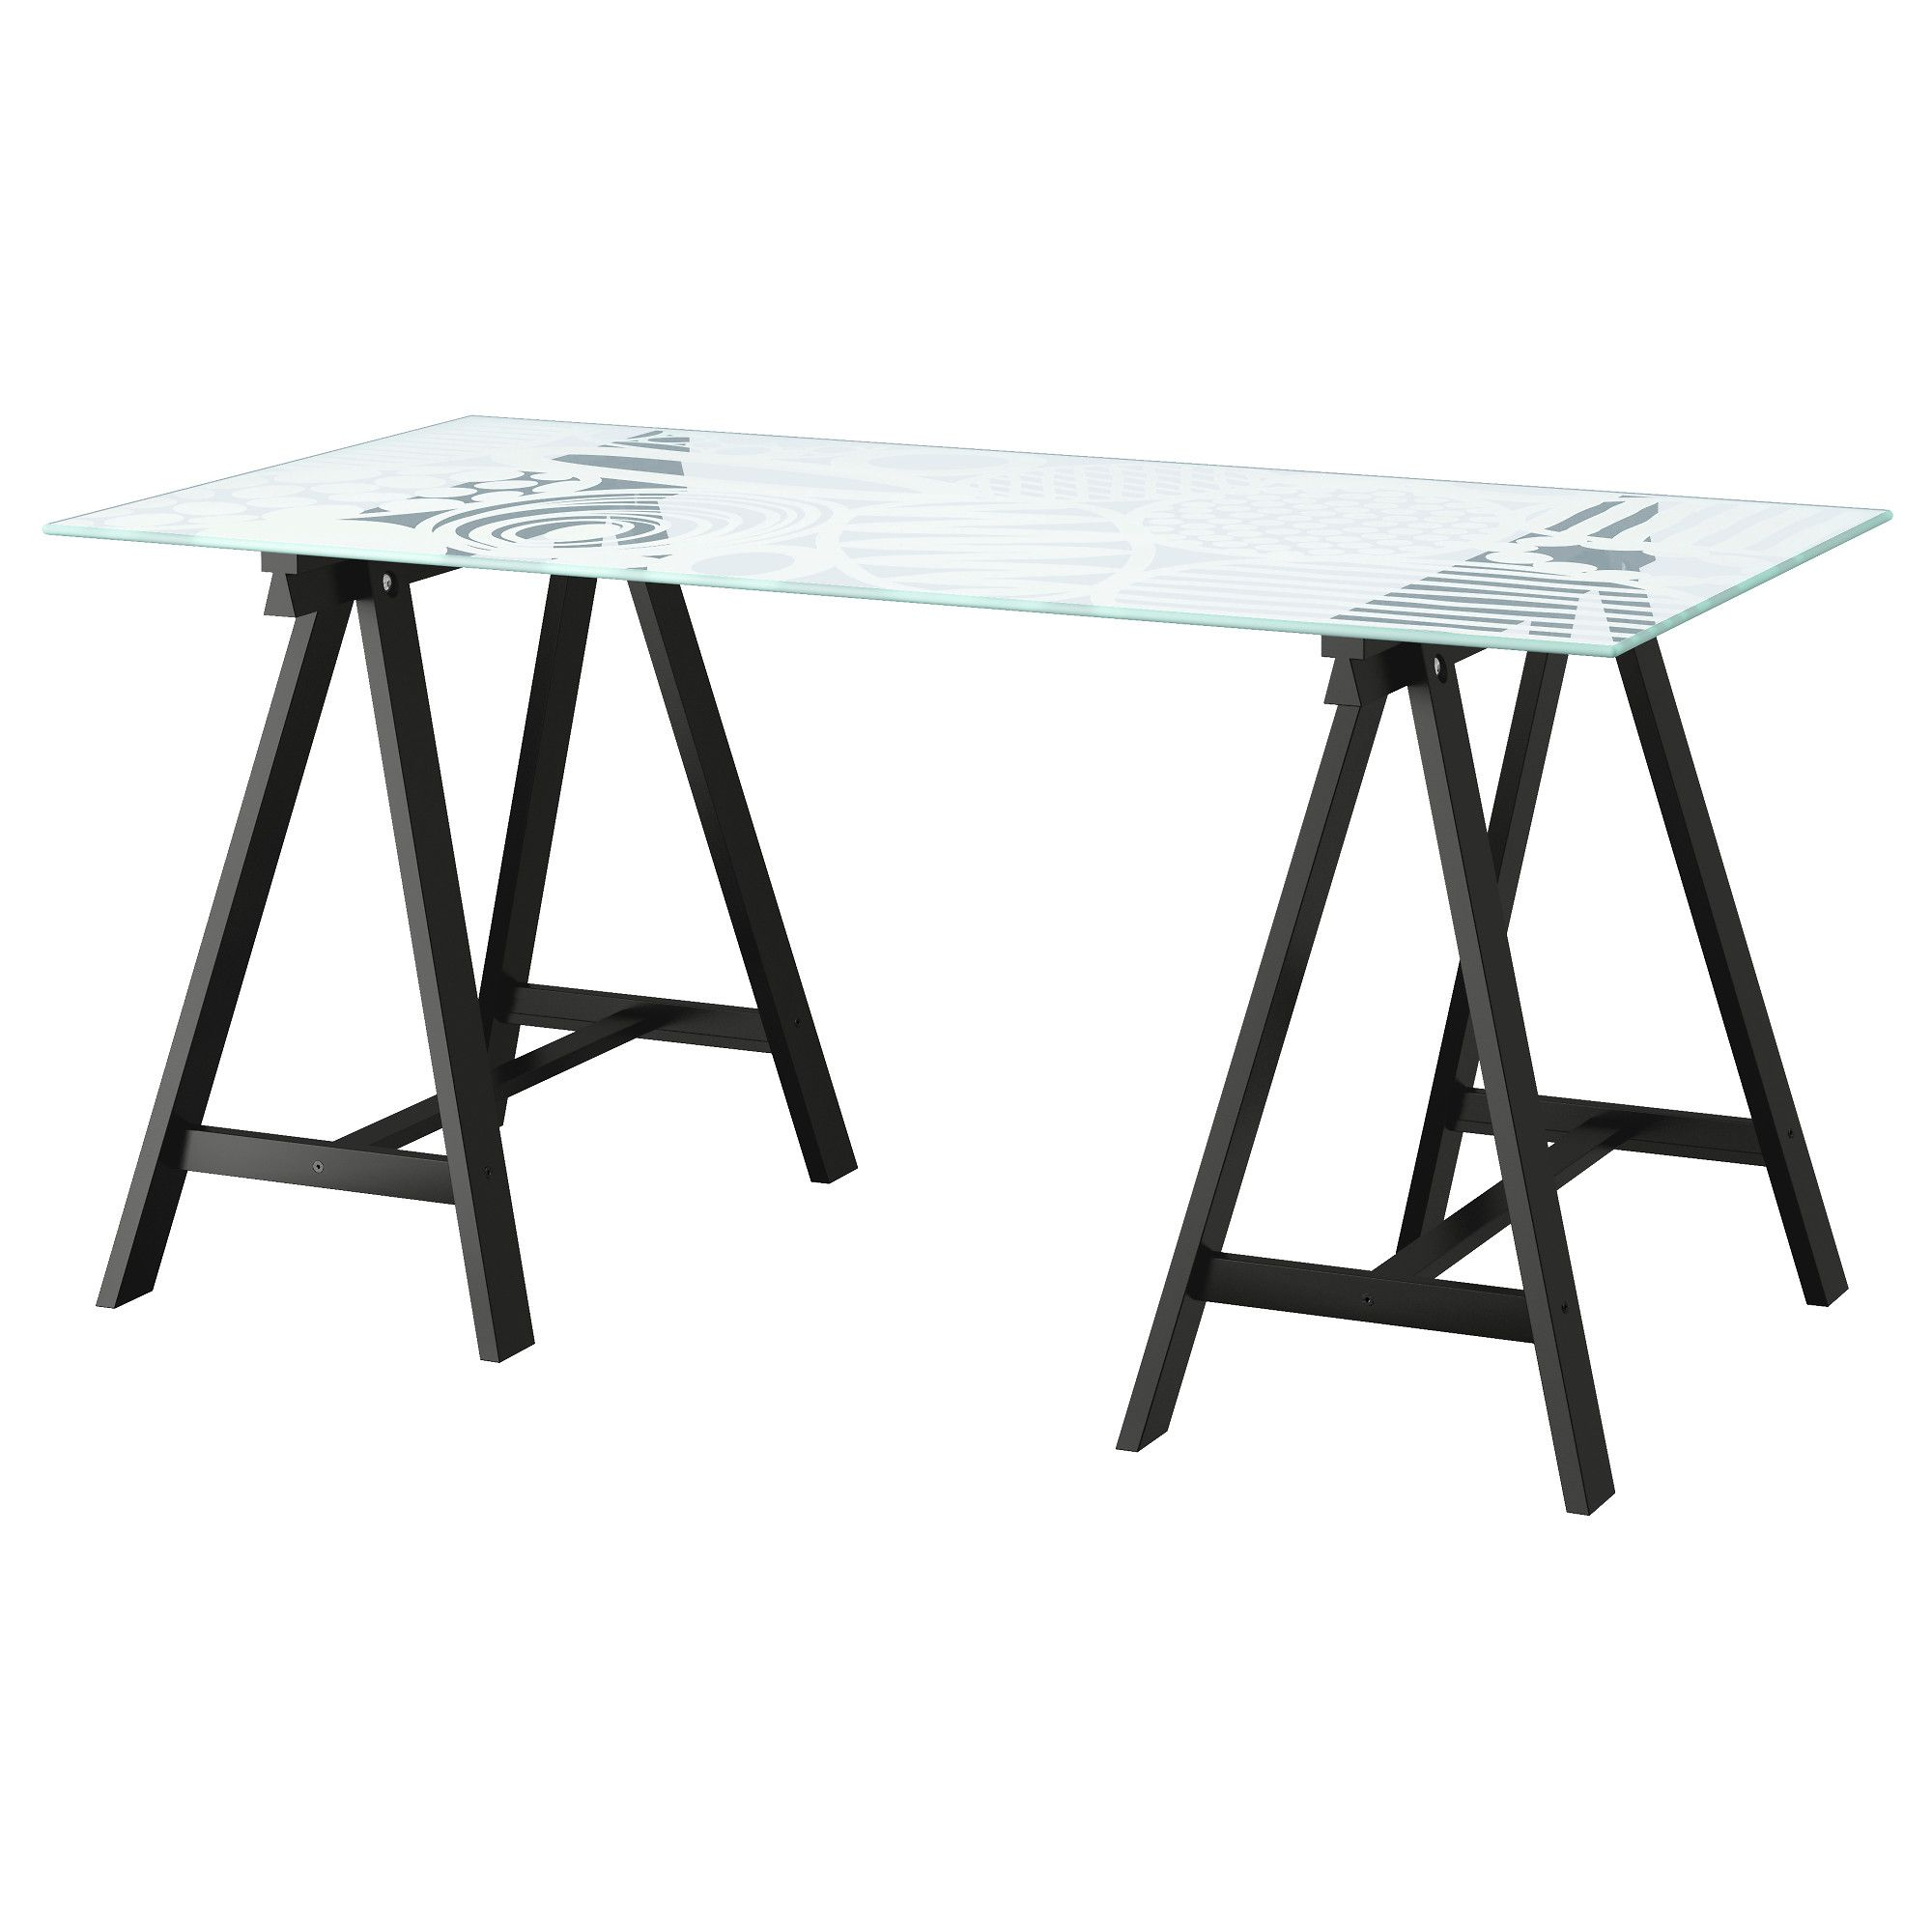 IKEA GLASHOLM/ODDVALD Table Glass/egg Pattern Black Cm The Table Top In  Tempered Glass Is Stain Resistant And Easy To Clean.